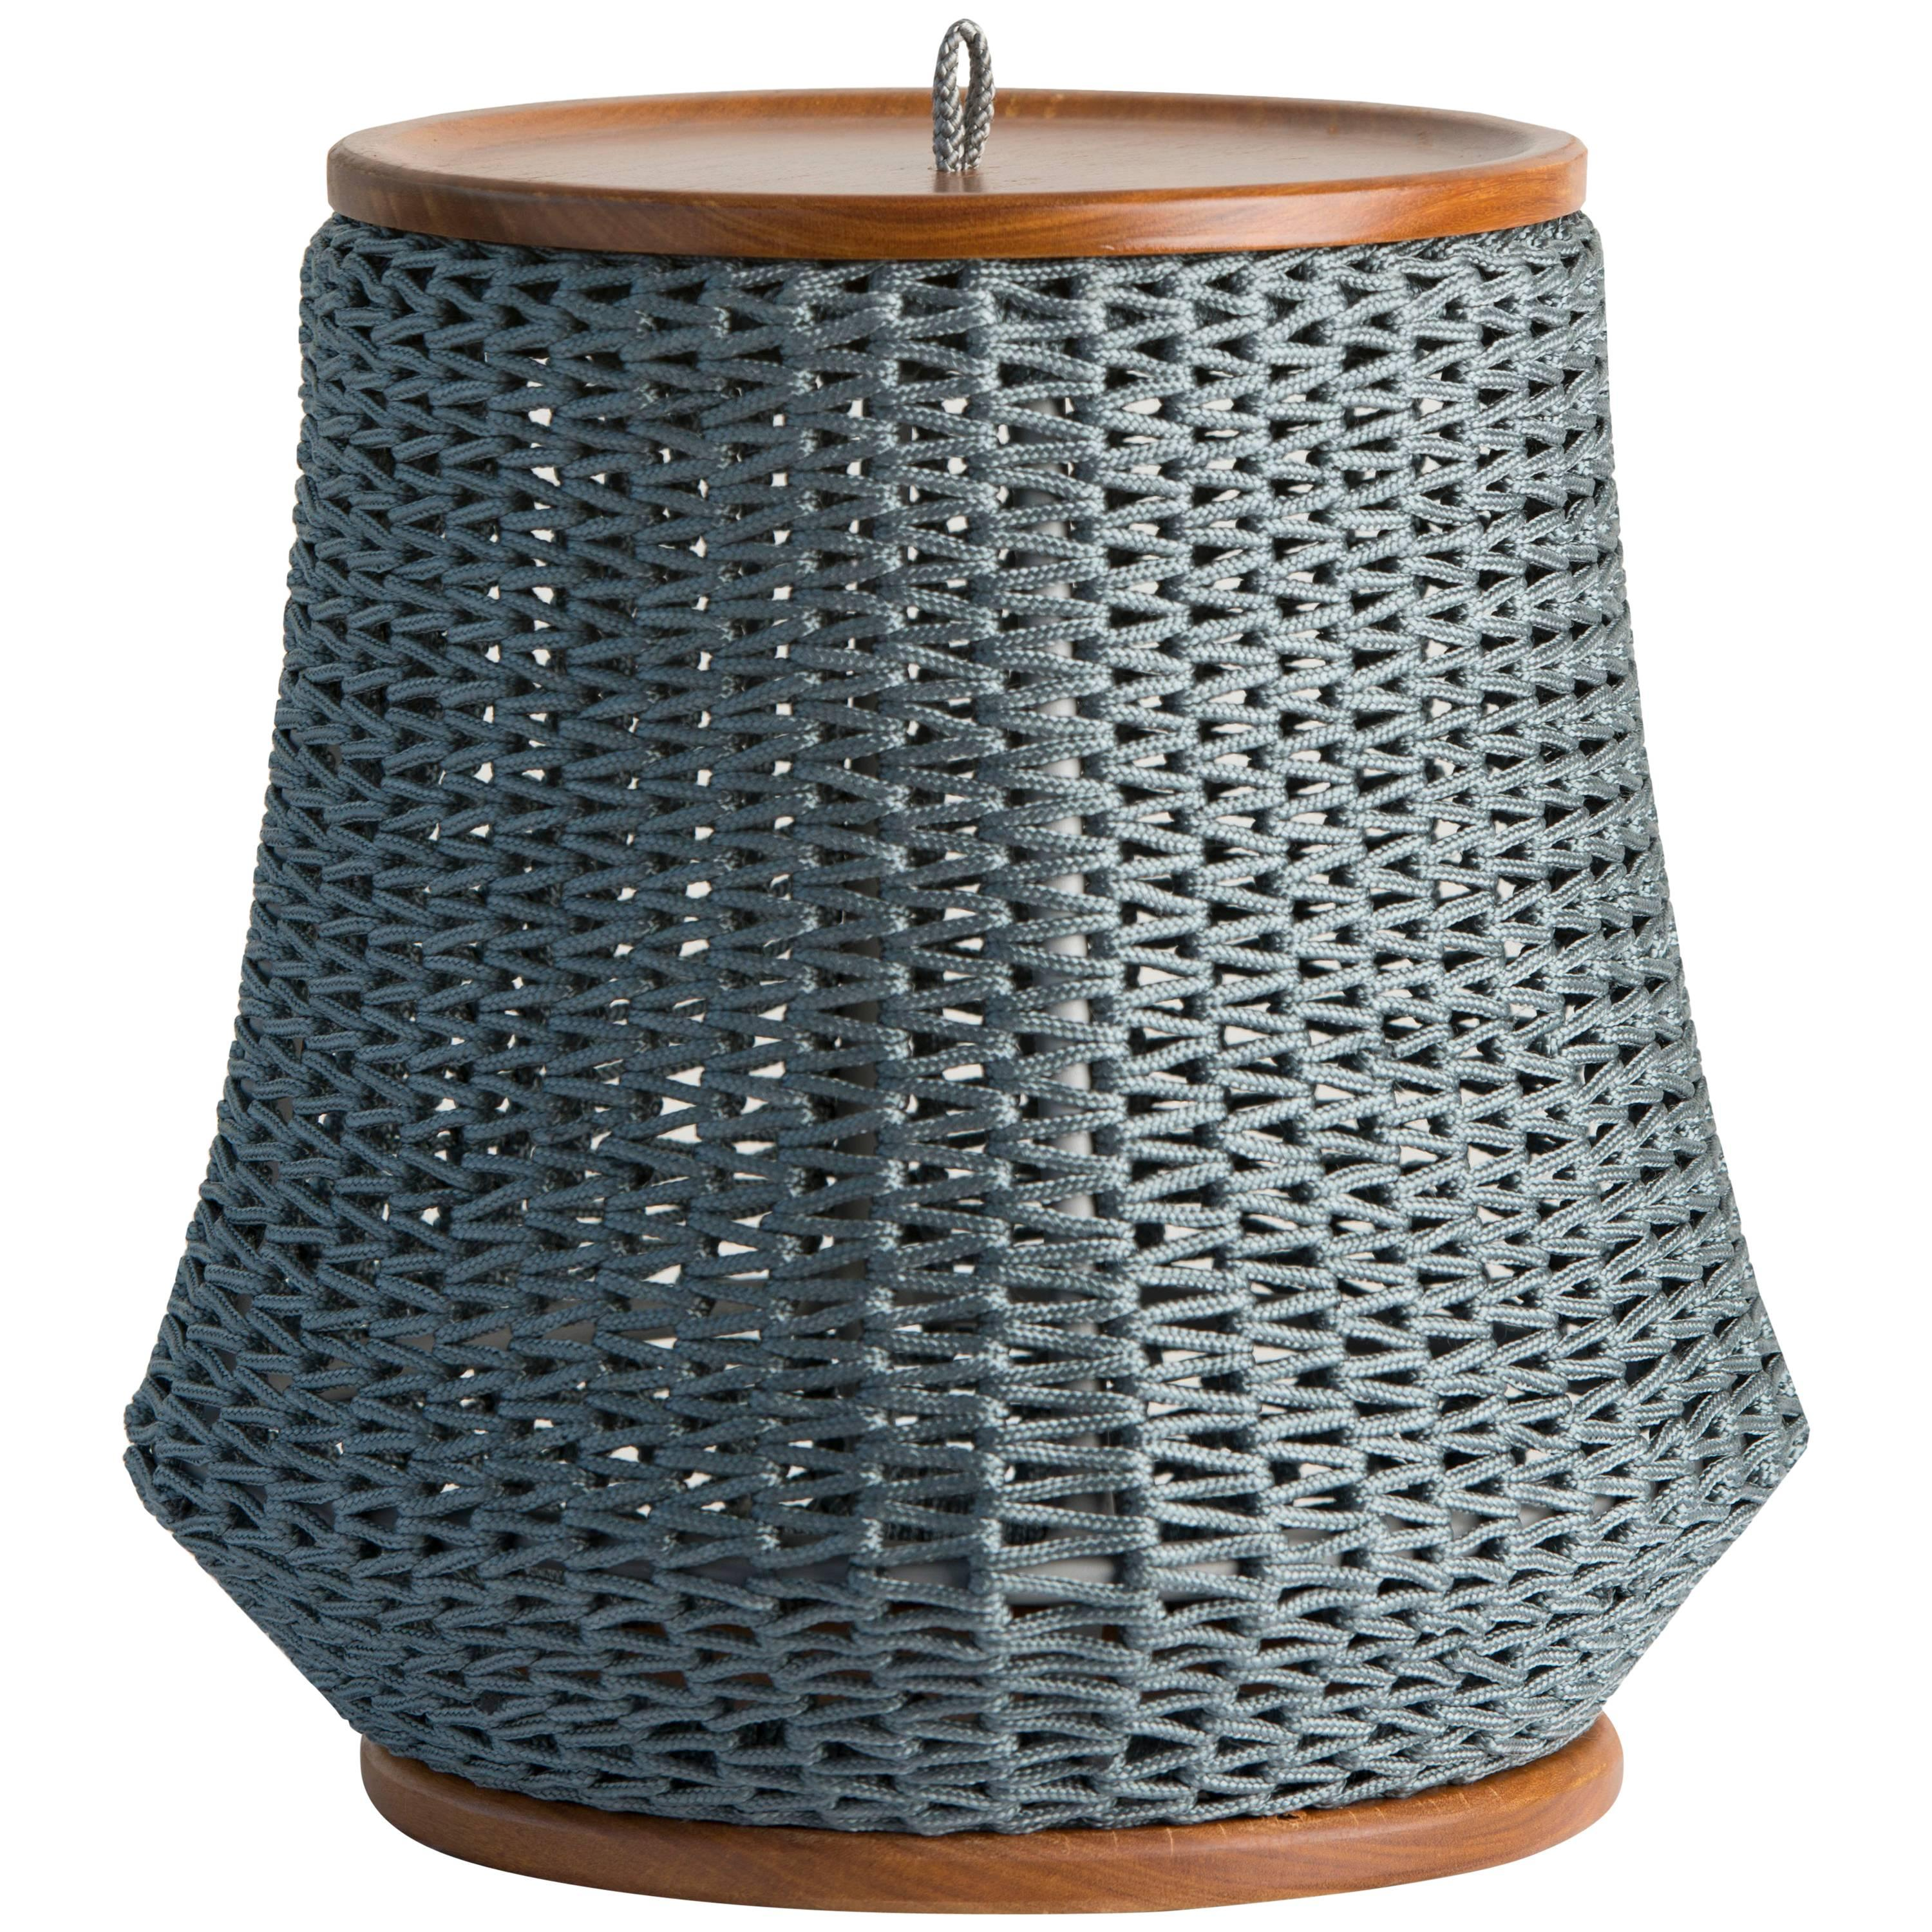 Modern Side Table, Stool and Container in solid wood and Rope